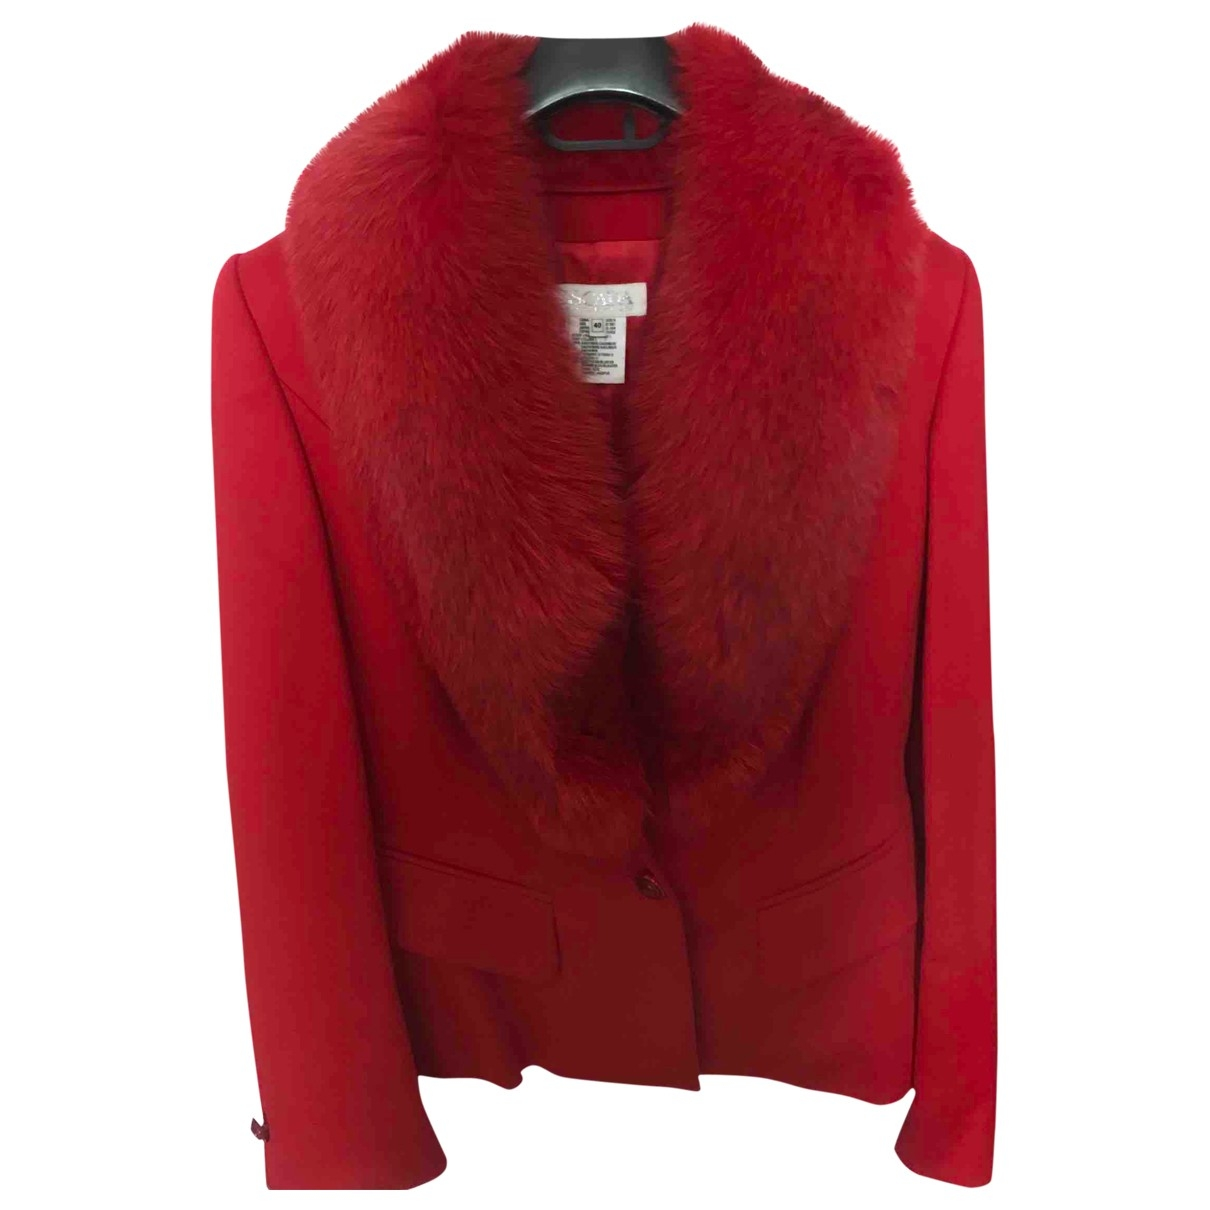 Escada \N Red Cashmere jacket for Women 42 IT